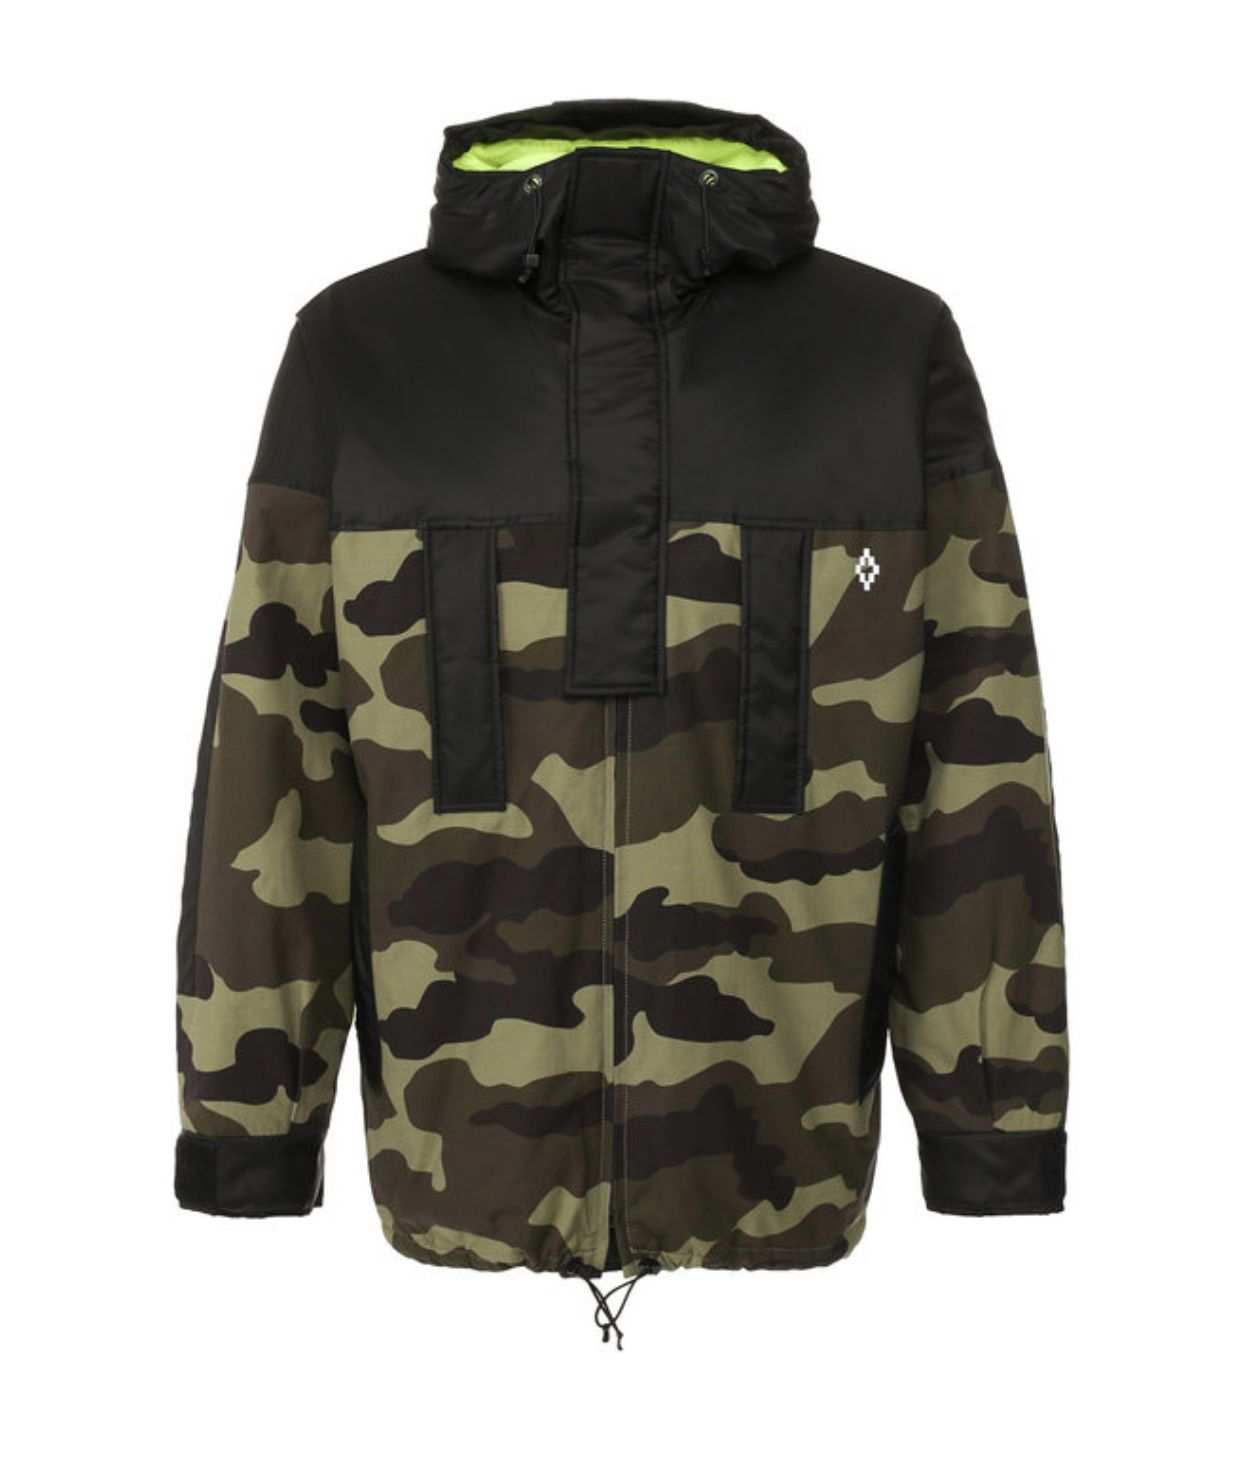 Pin By Sergej On Military Fashion Hoodies Wearable